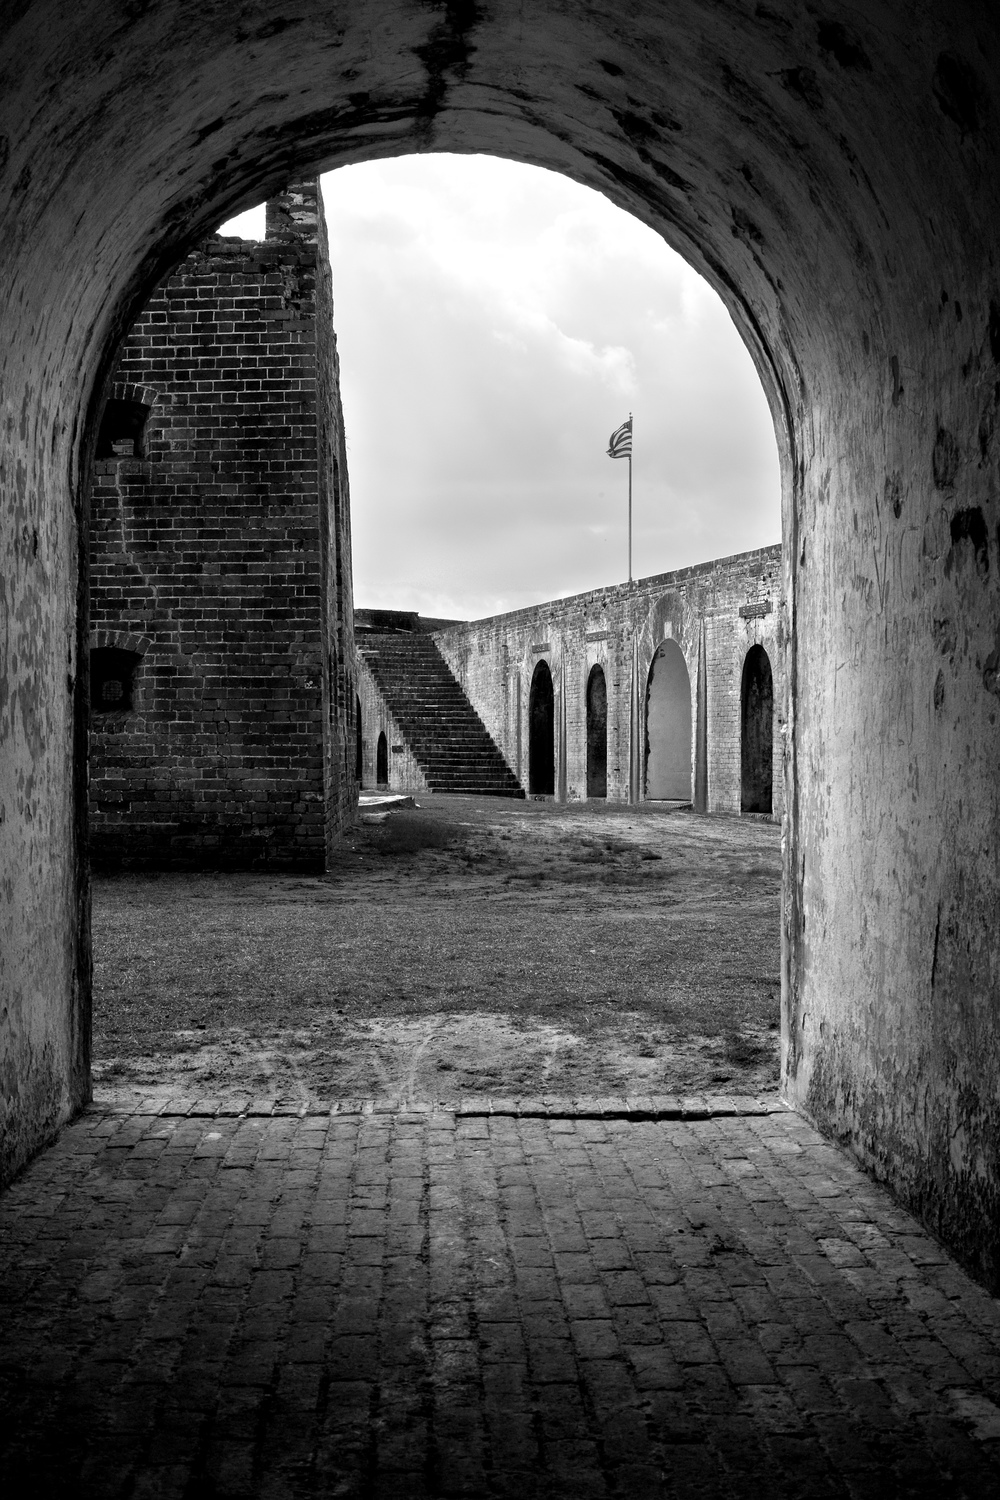 louisiana-coastal-fort-08.jpg